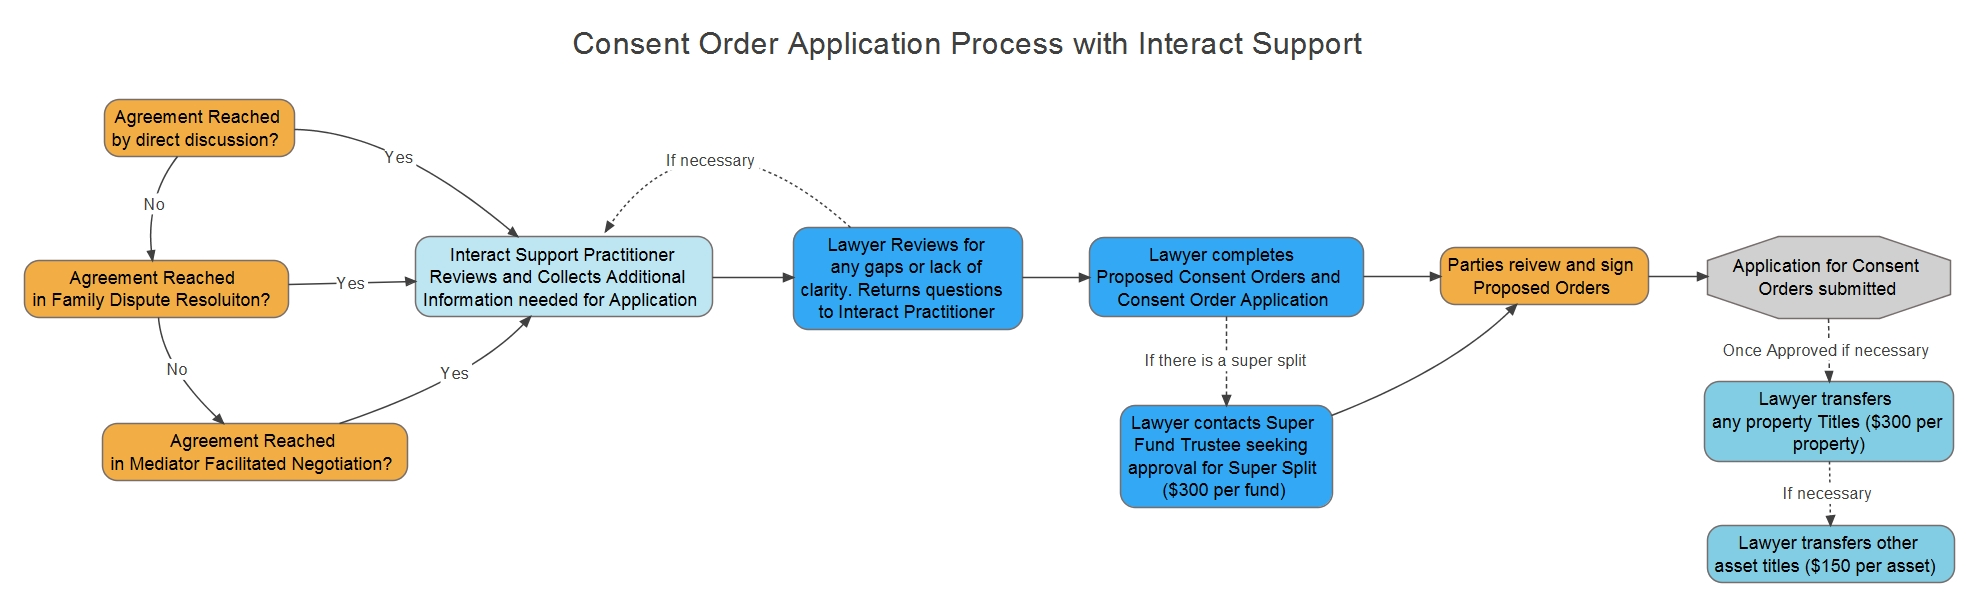 Consent Order Process with Interact Support